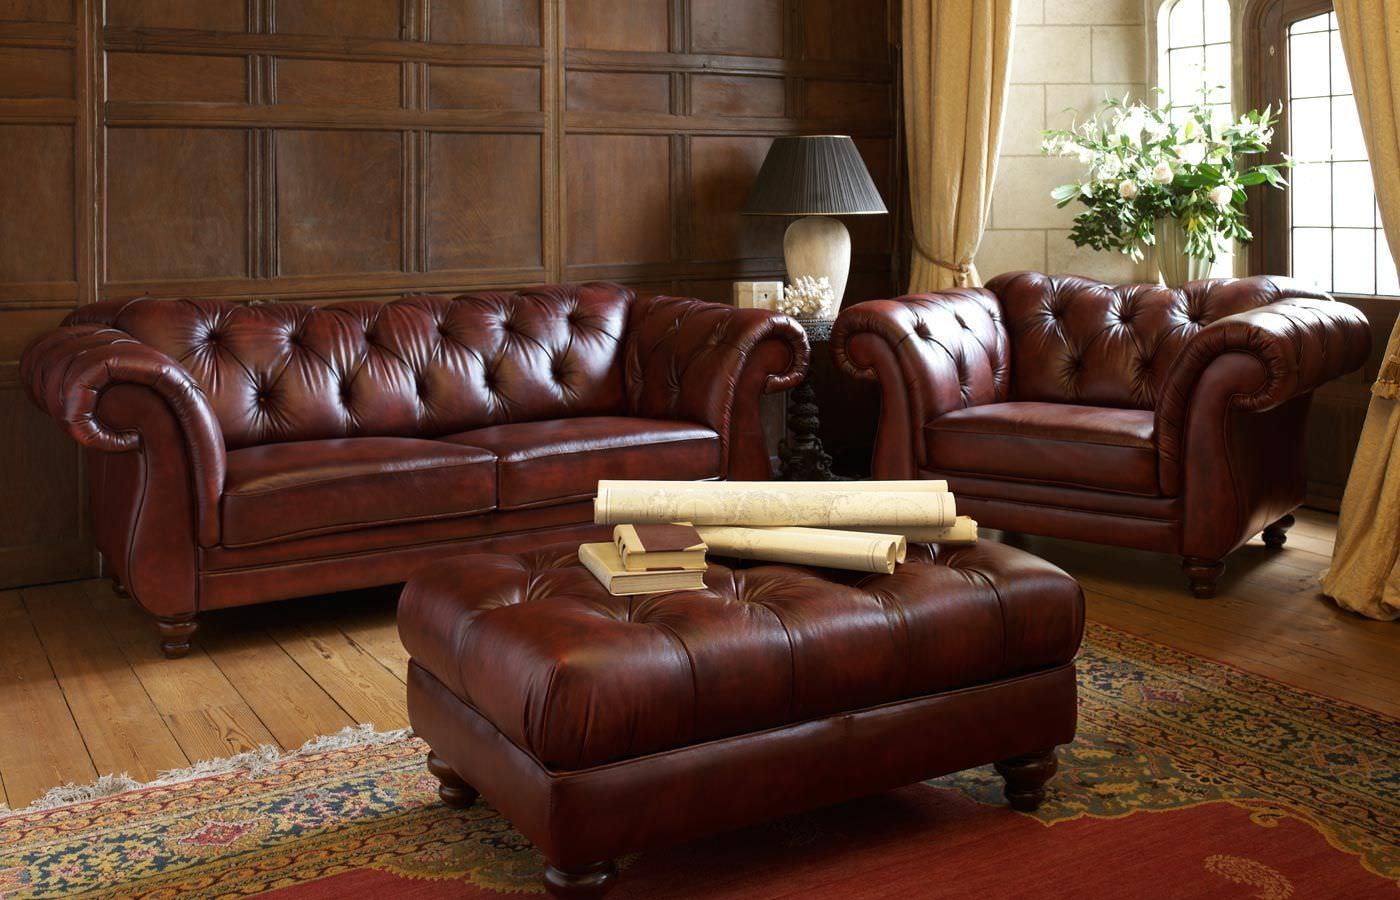 Chesterfield Sofa And Chairs Thesofa Intended For Chesterfield Sofa And Chair (Image 6 of 15)